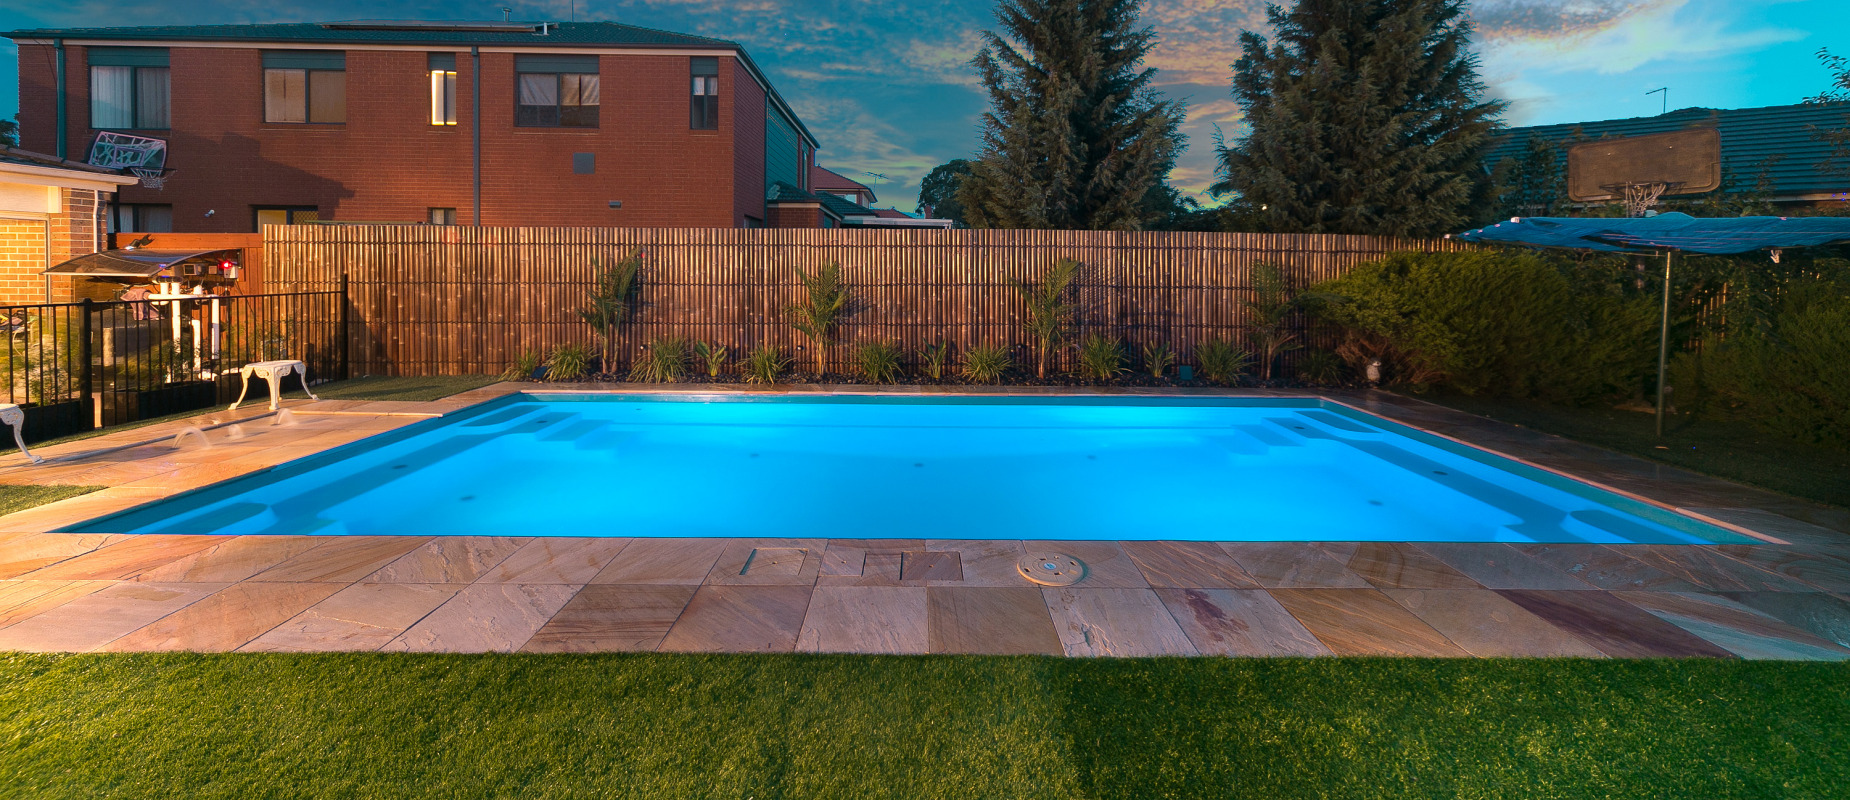 Contemporary Pool Design - Shallow Ends, Deep Centre | Compass Pools